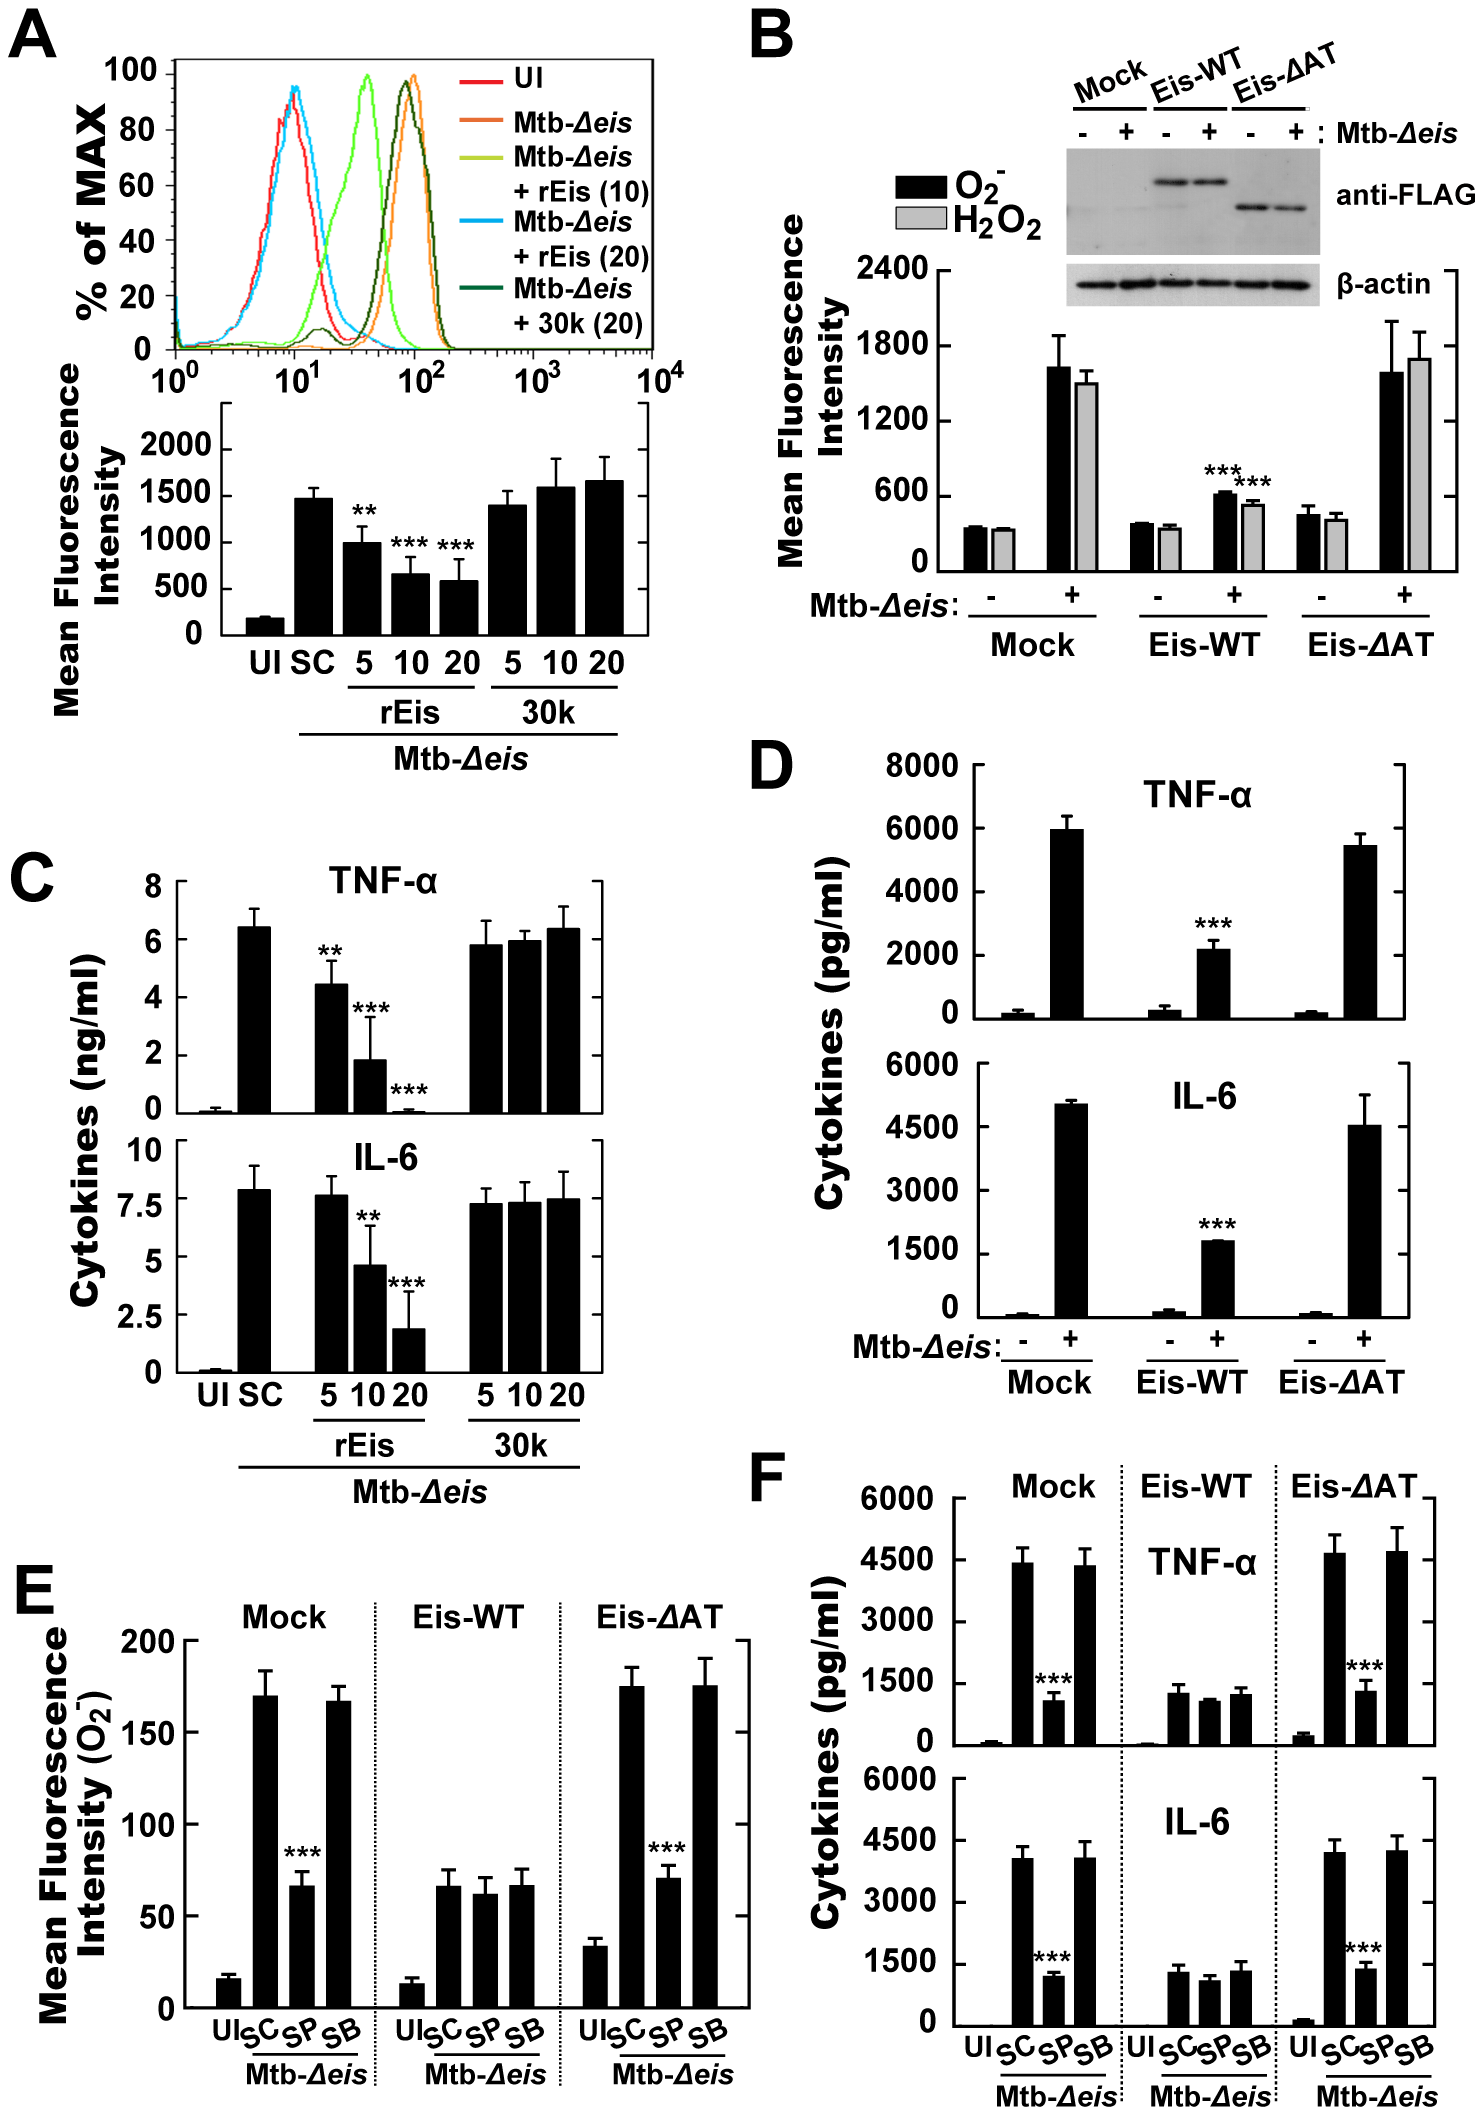 Eis modulates ROS release and proinflammatory cytokine production through its <i>N</i>-acetyltransferase domain.